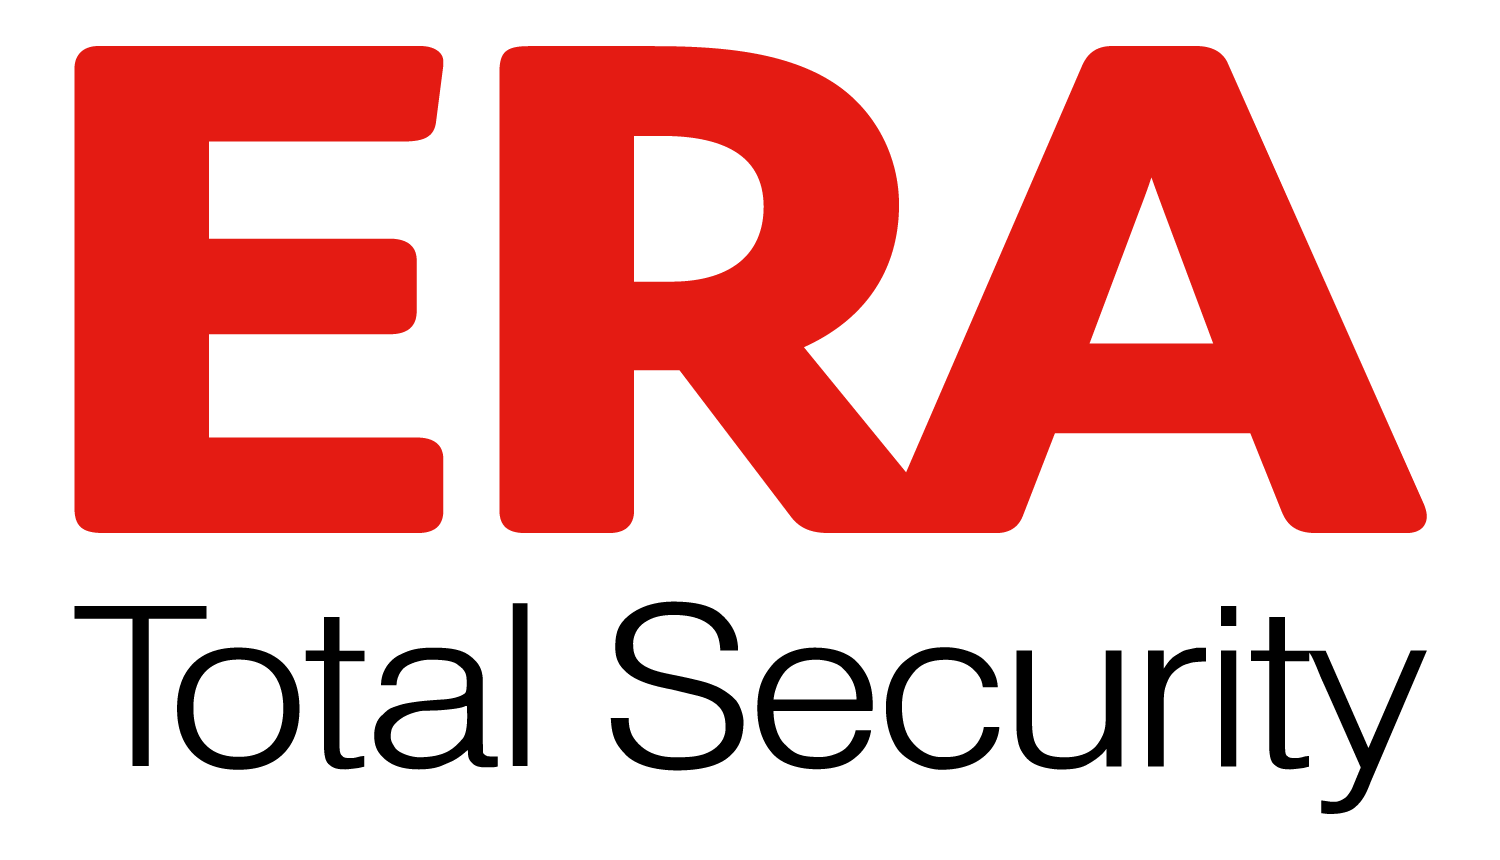 ERA Products Ltd